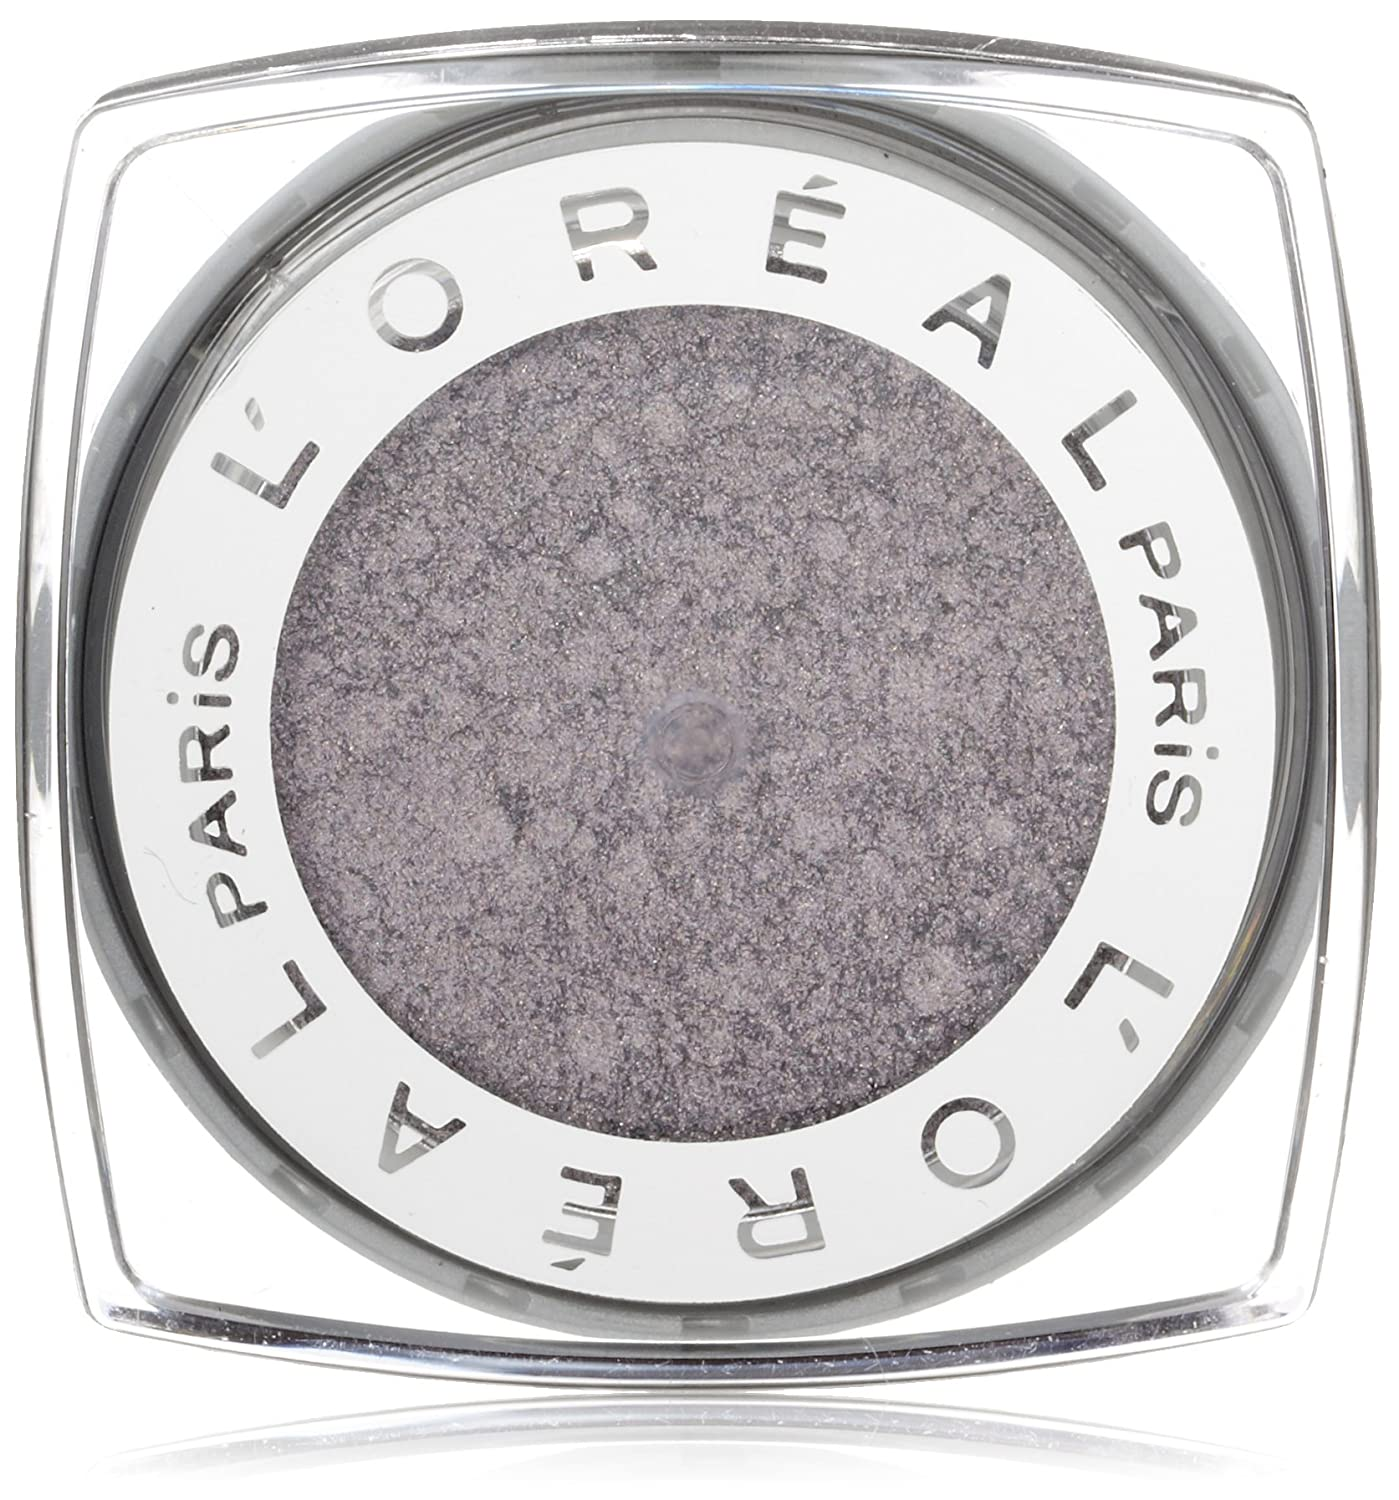 L'Oréal Paris Infallible 24HR Shadow, Liquid Diamond, 0.12 oz. L' Oreal Paris Cosmetics K1077300